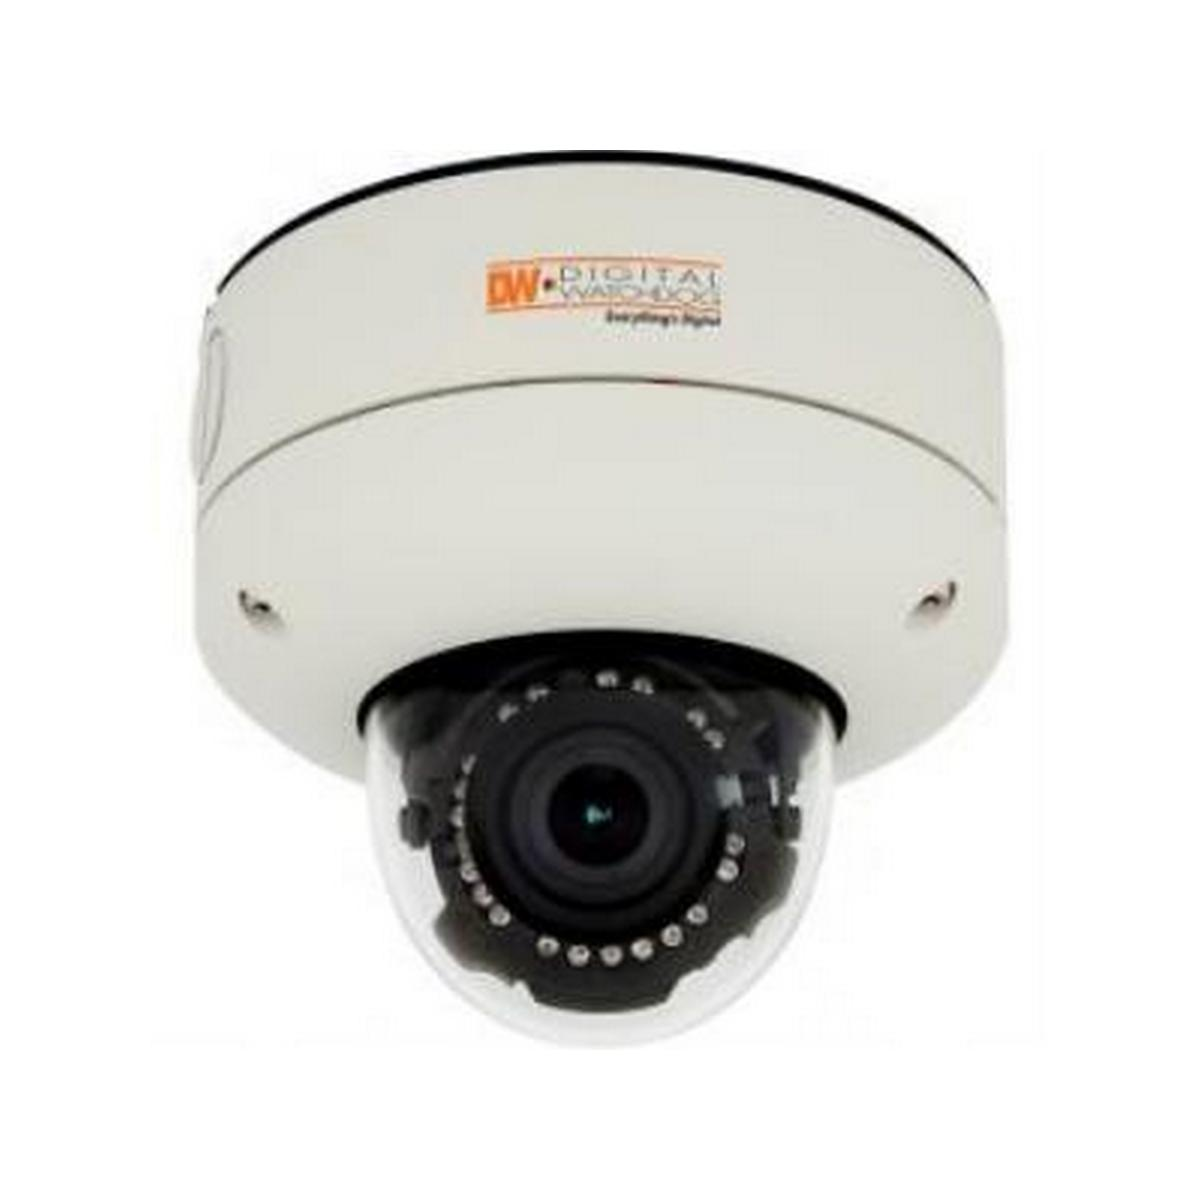 Digital Watchdog MV421TIR 2.1MP 1080P IR Vandal dome